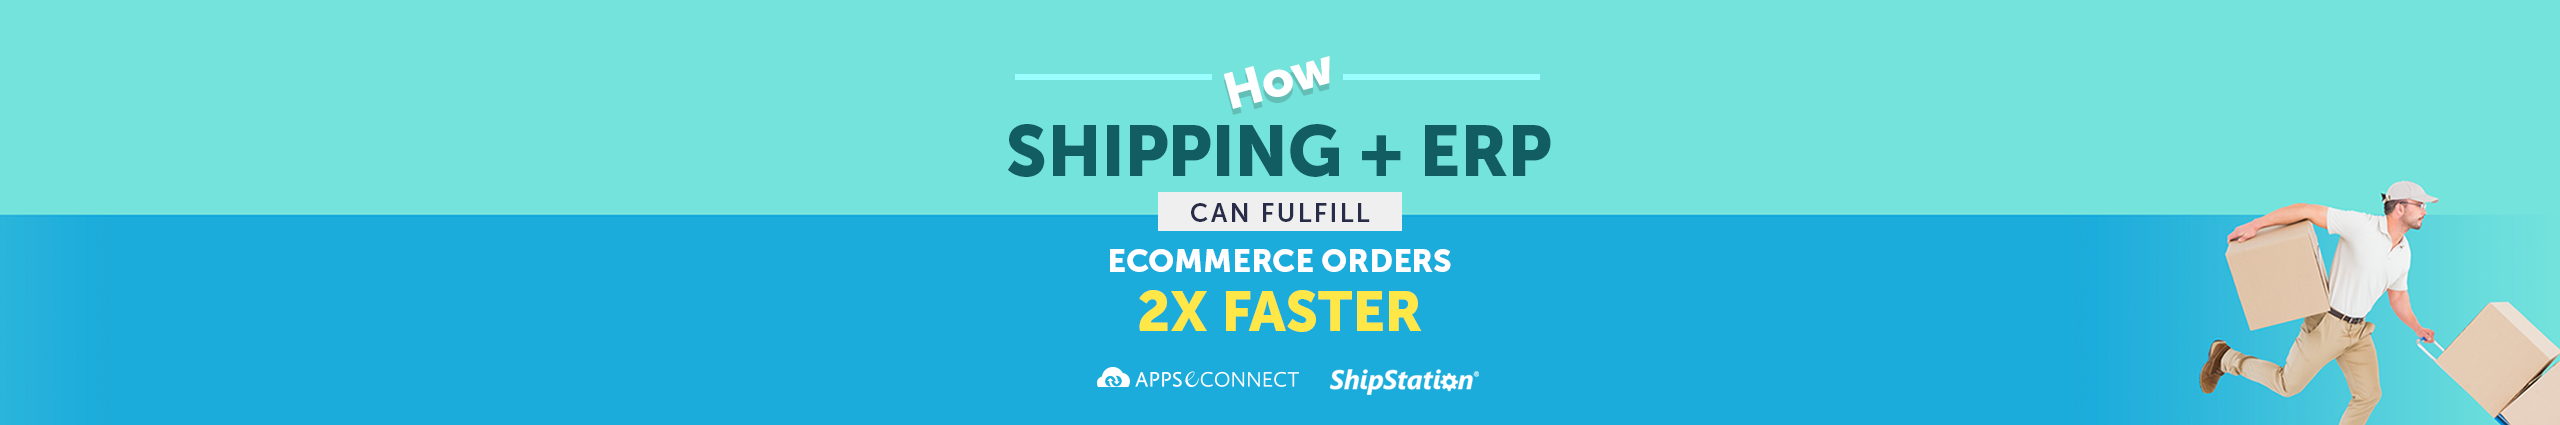 Shipping and ERP-Can-Fulfill-eCommerce-Orders-2X-Faster